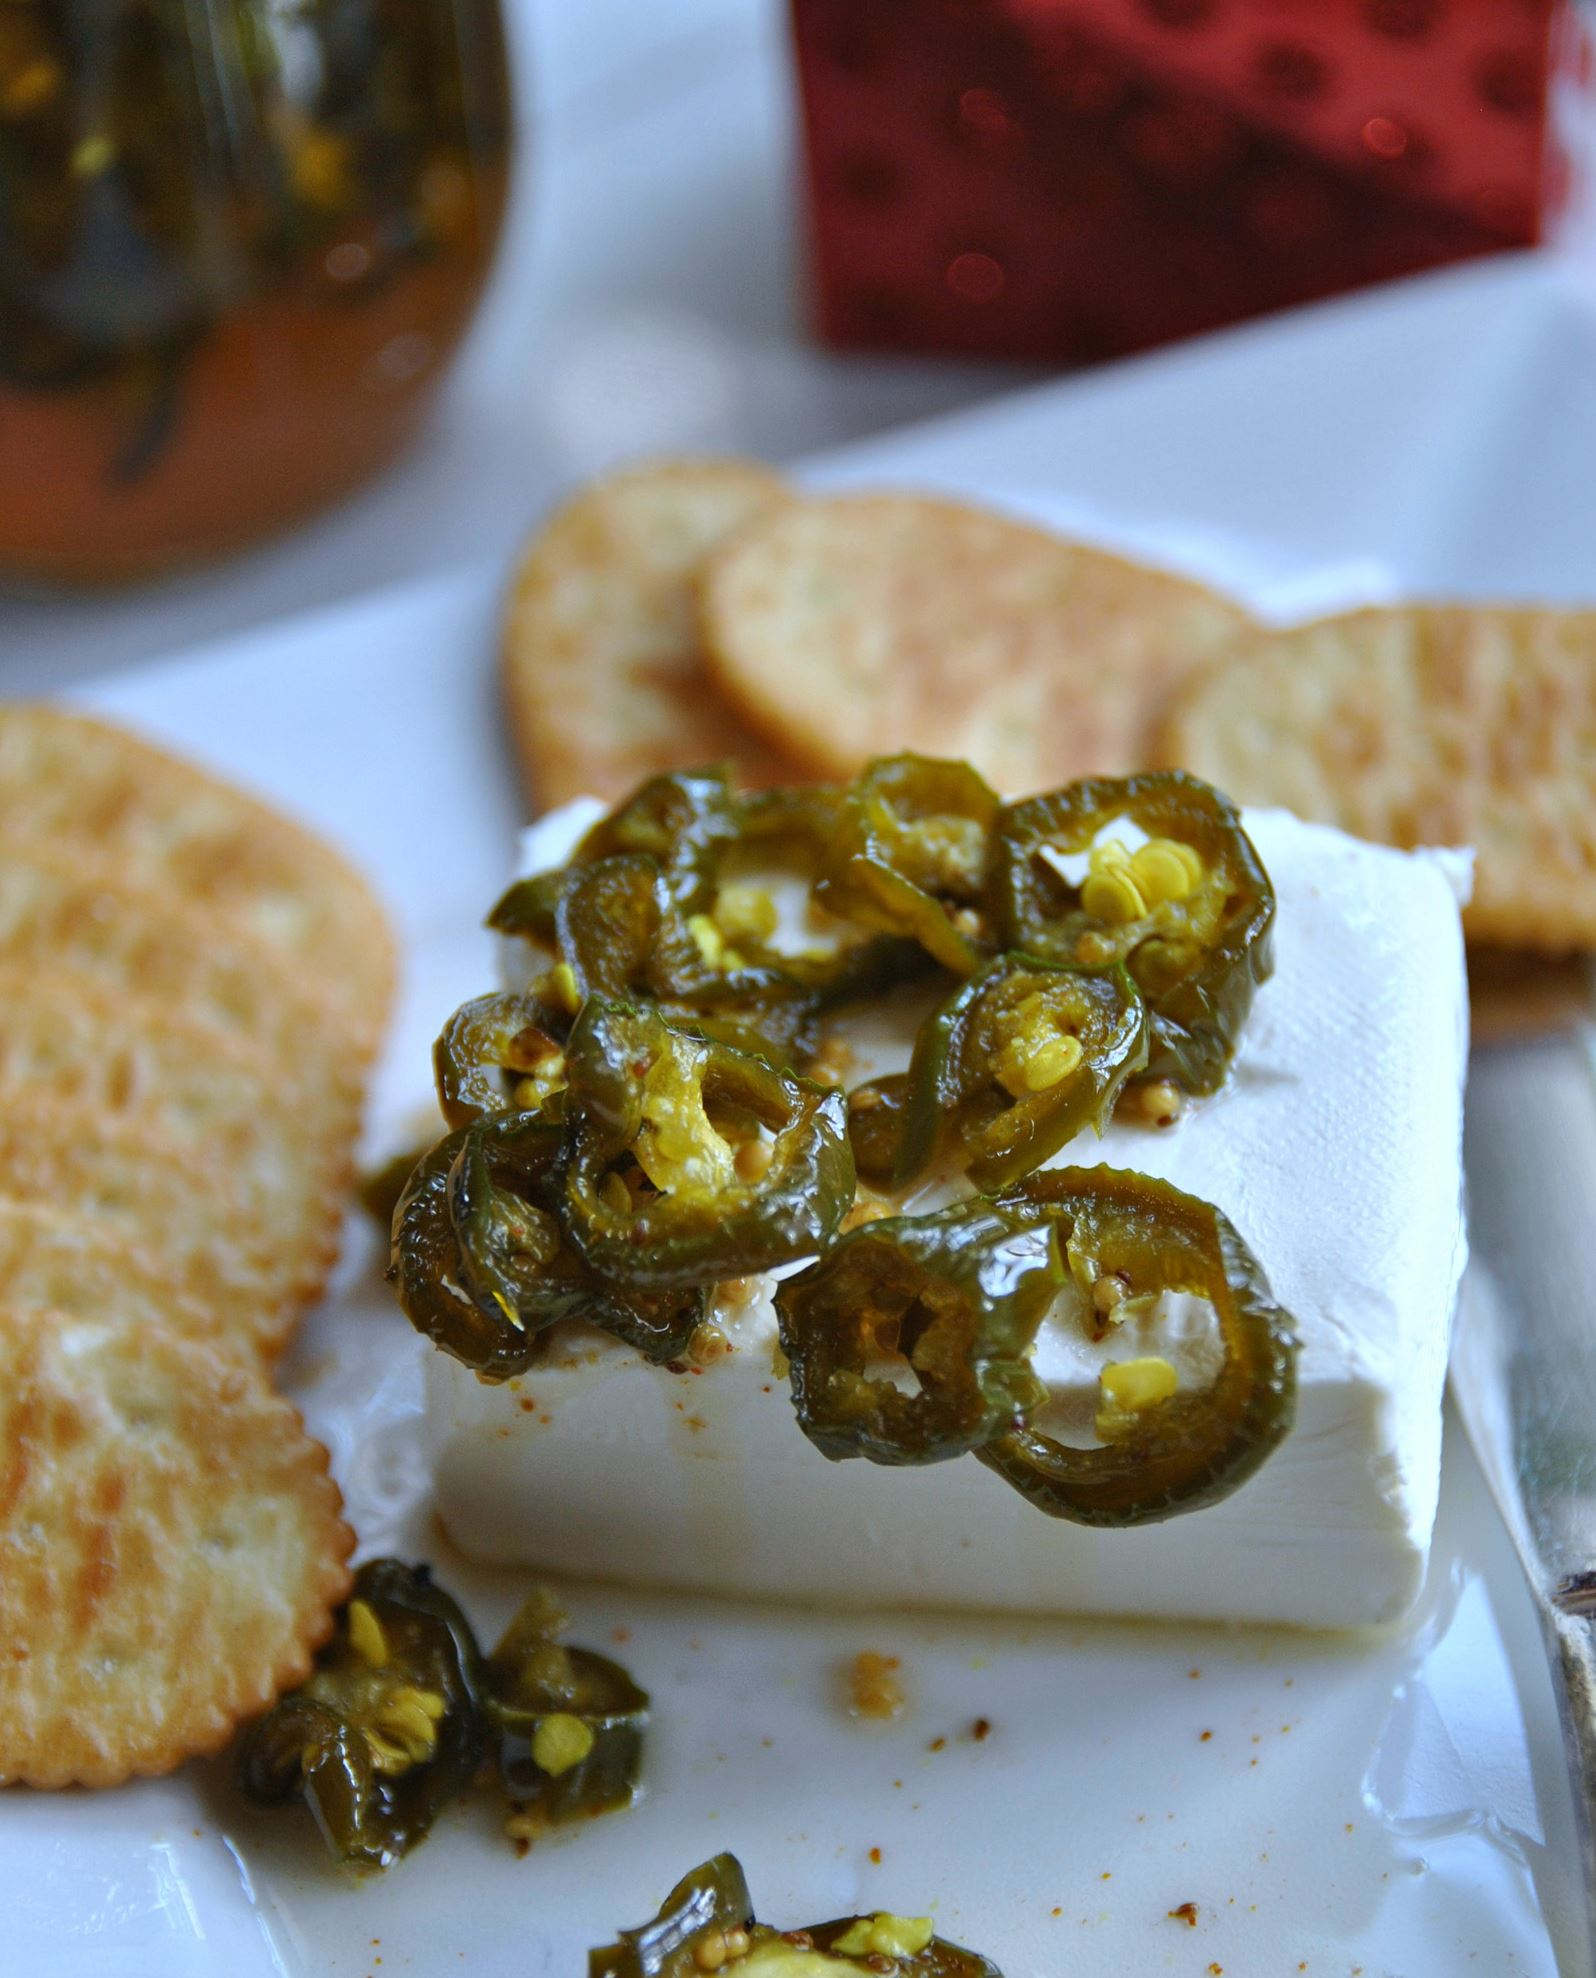 COWBOYCANDY3-5 Cowboy Candy (Candied Jalapenos).